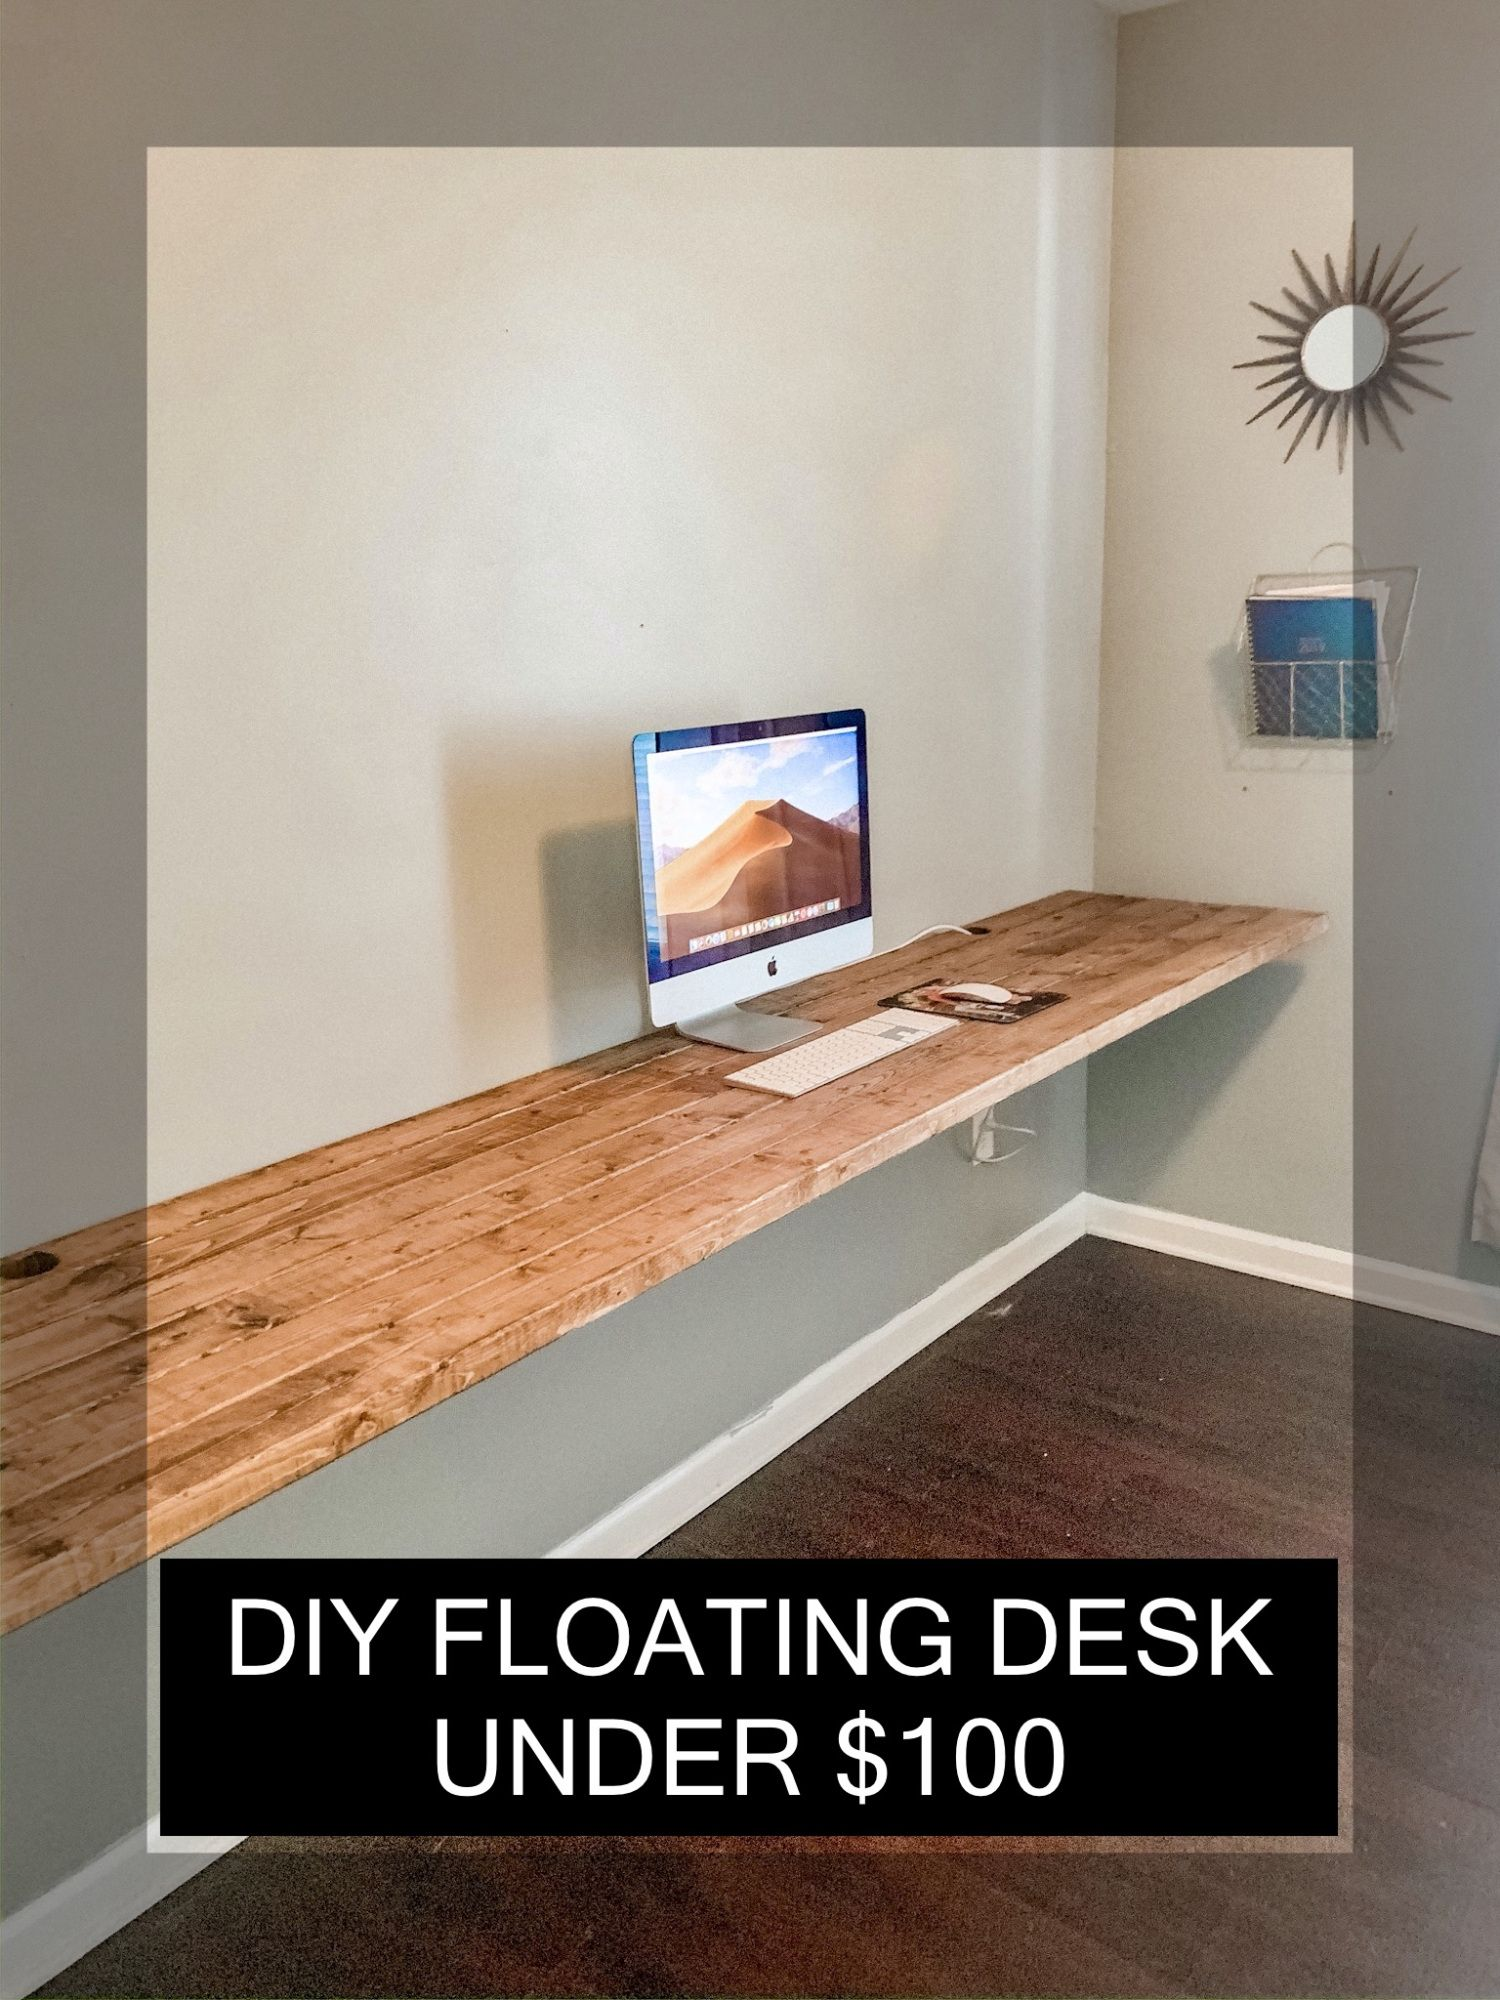 Diy floating desk under 100 simply shemwell in 2020